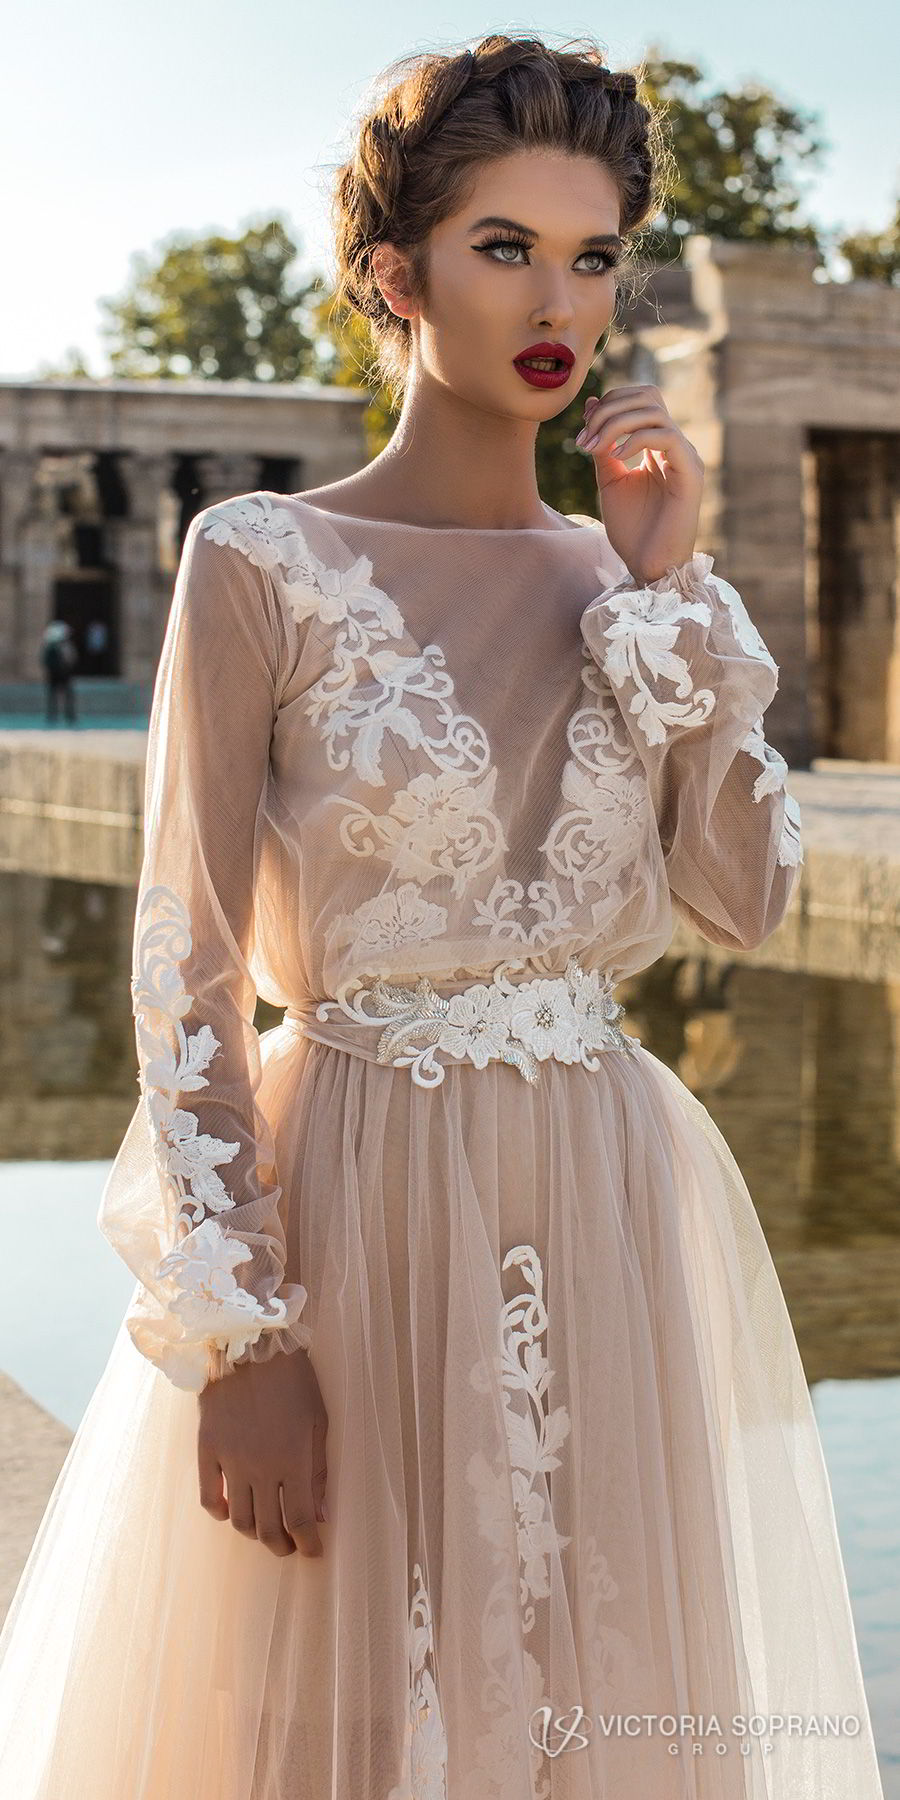 victoria soprano 2018 bridal long sleeves illuson bateau v neck light embellishment romantic blush color a line wedding dress sheer back sweep train (leila) zv